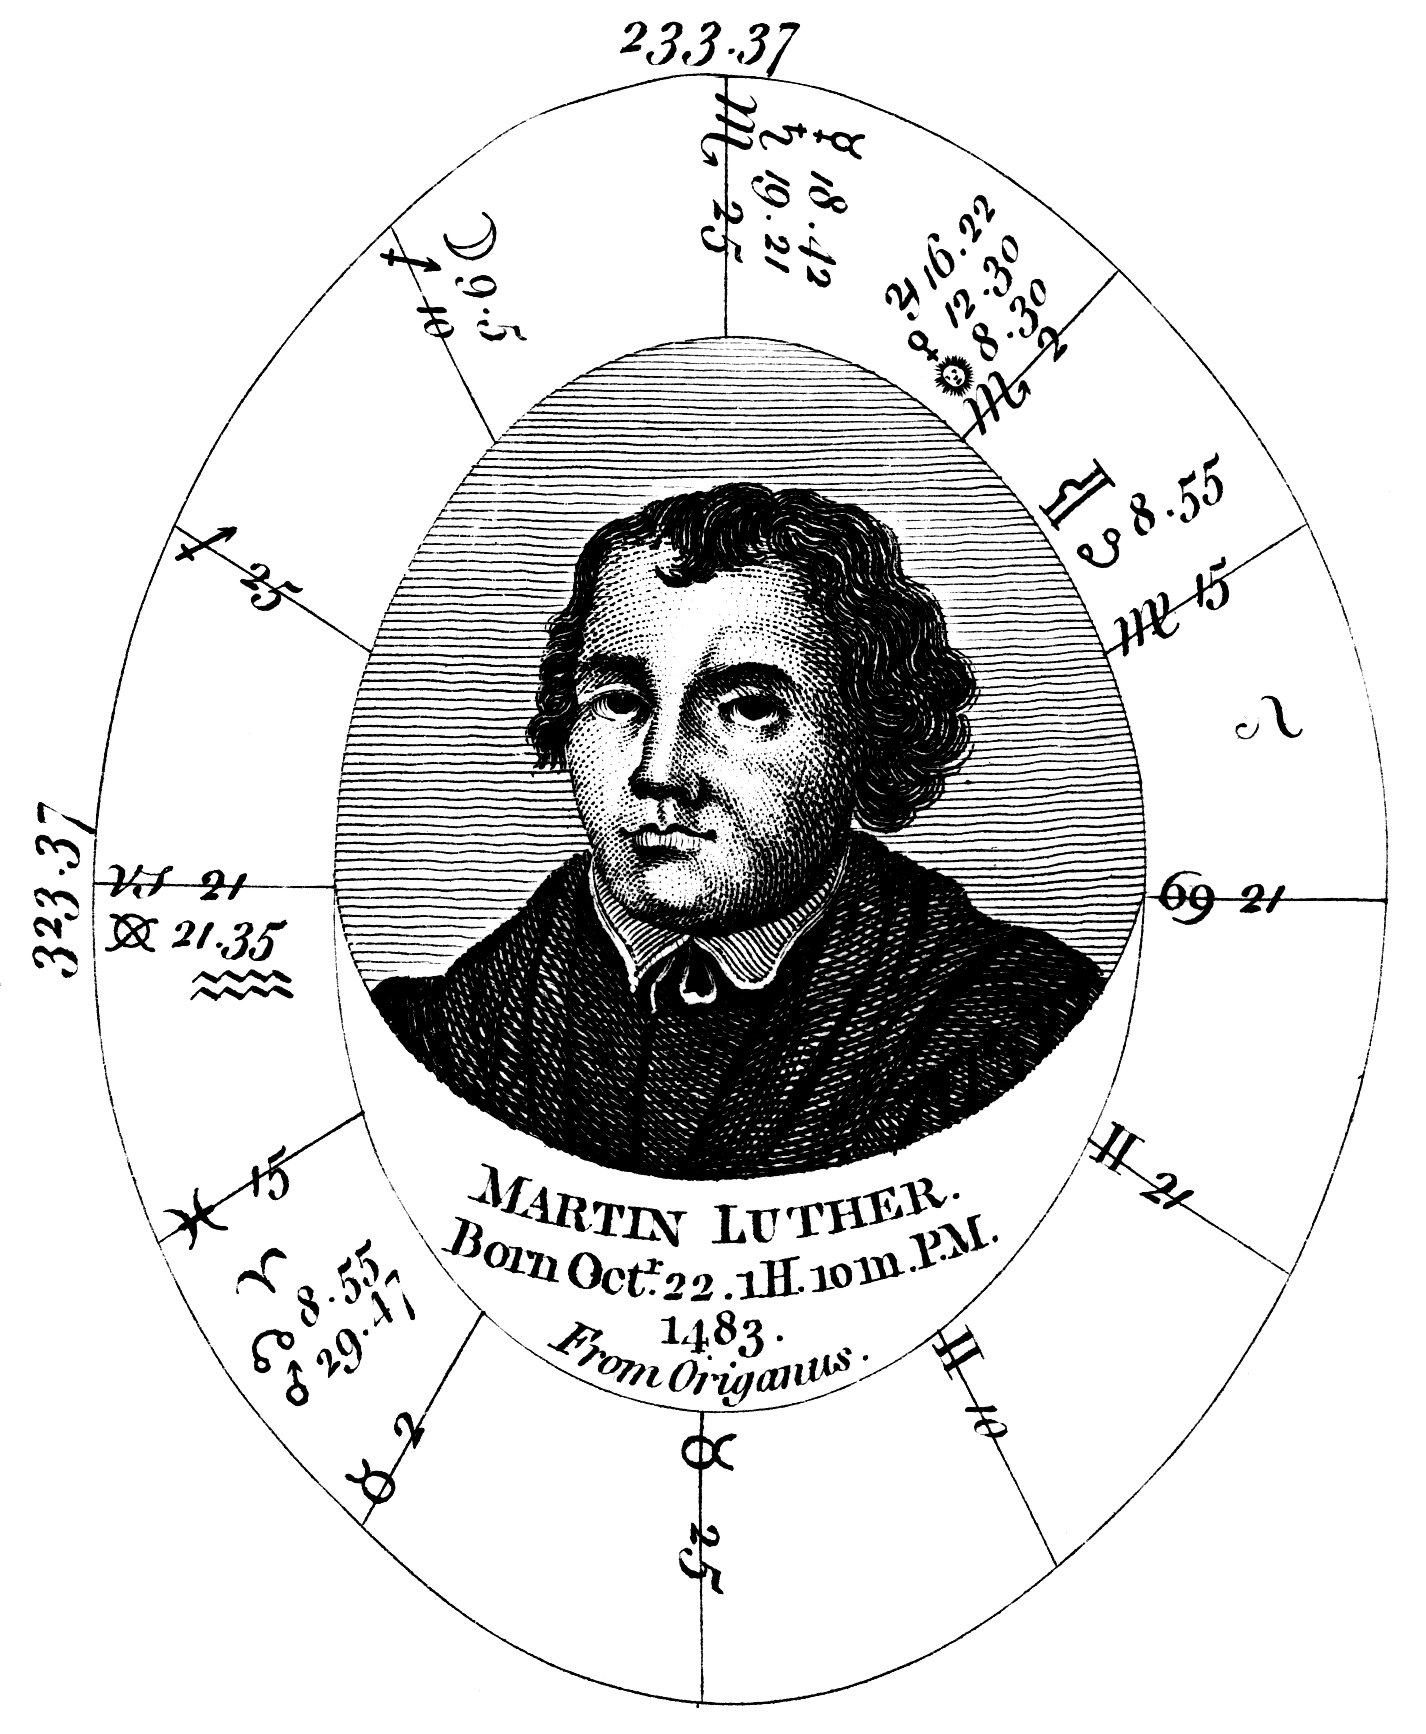 Birth Horoscope Chart: Horoscope-MartinLuther.jpg - Wikipedia,Chart